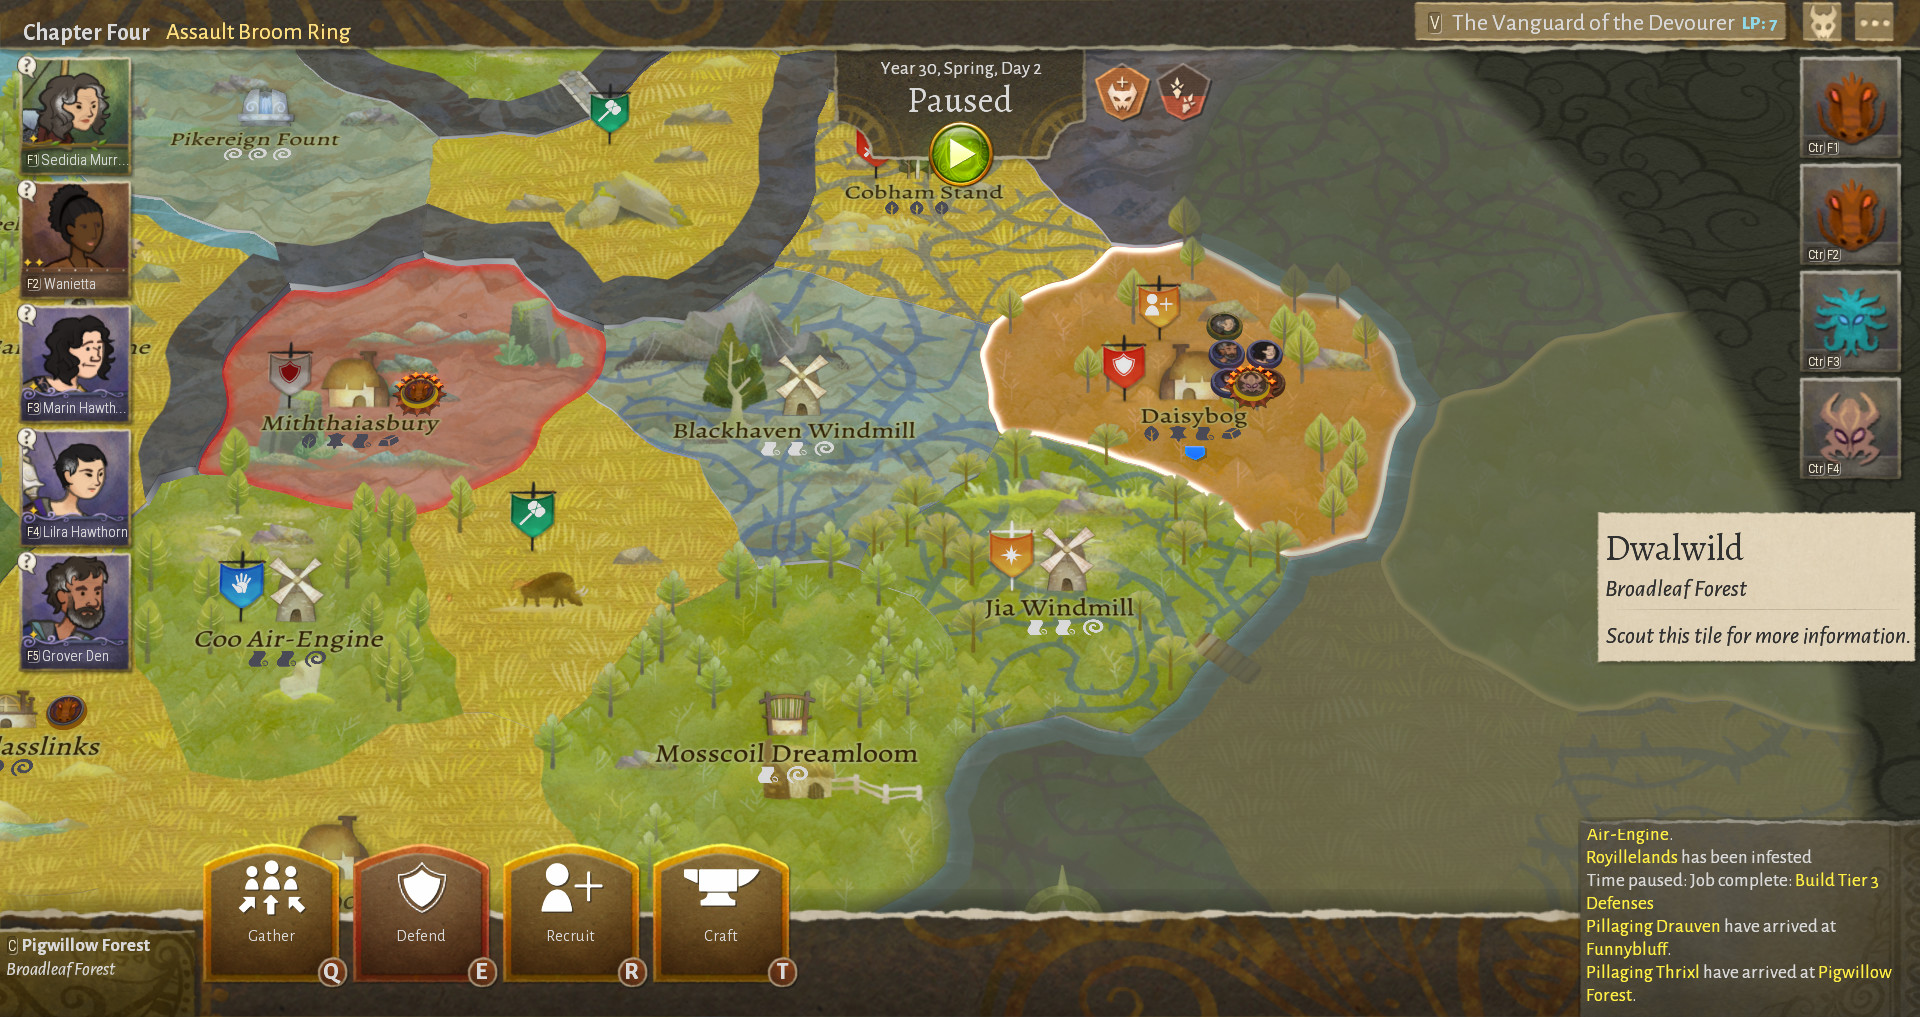 An overview of the realm's map in Wildermyth. The map is split into different sections with different buildings in each part, all color-coded. On the left there is a list of units, and on the right a list of enemies.